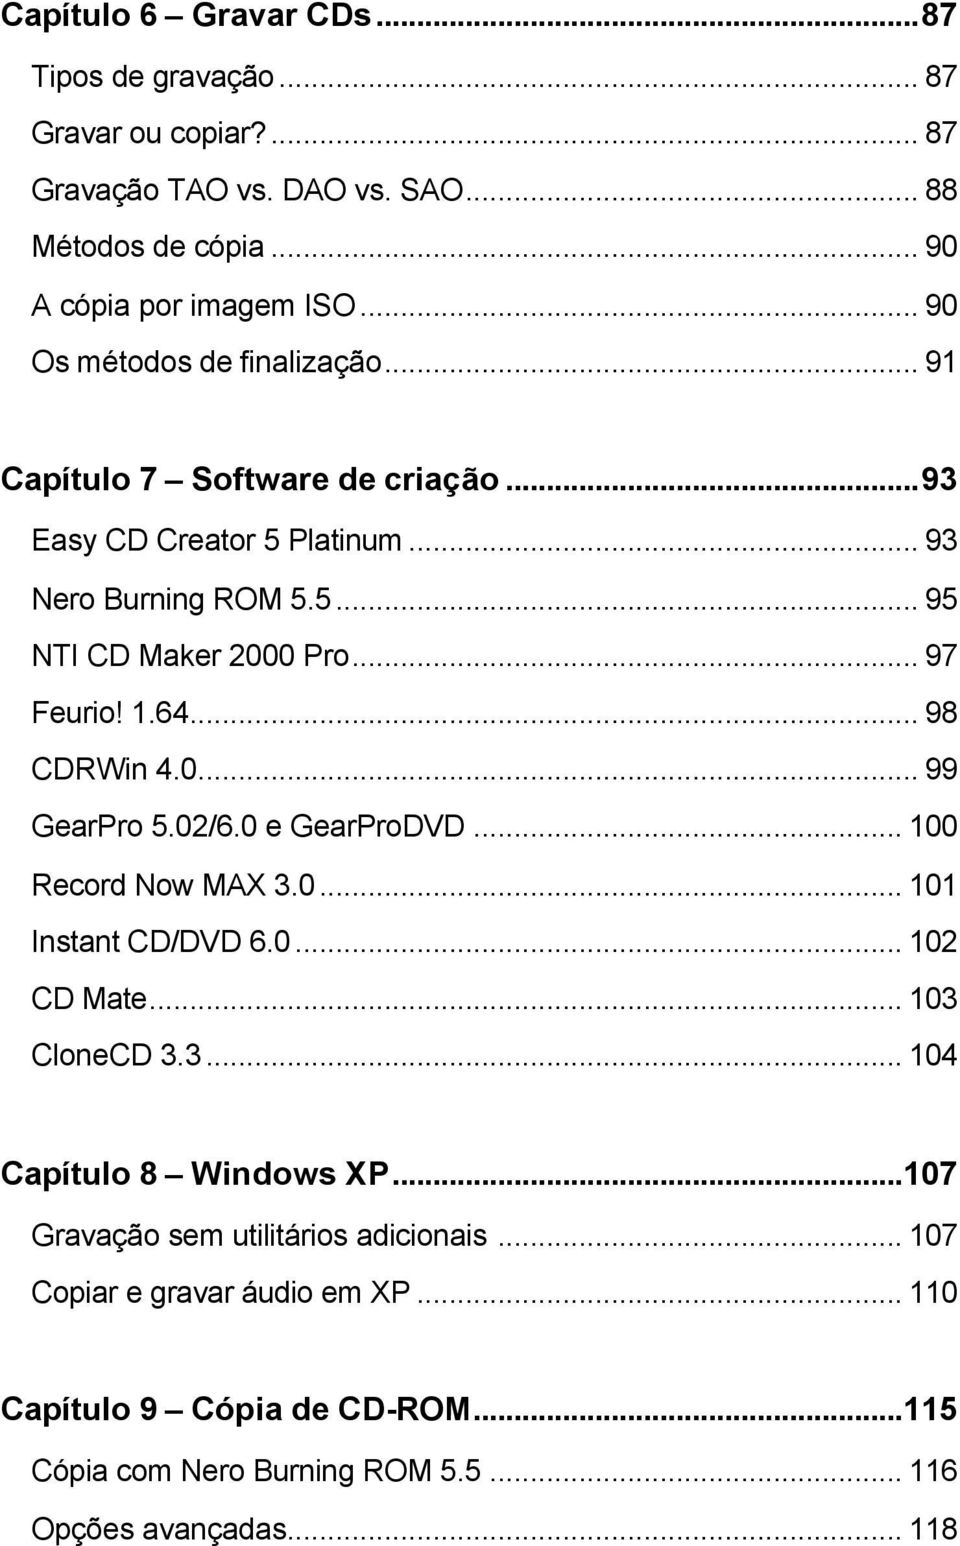 1.64... 98 CDRWin 4.0... 99 GearPro 5.02/6.0 e GearProDVD... 100 Record Now MAX 3.0... 101 Instant CD/DVD 6.0... 102 CD Mate... 103 CloneCD 3.3... 104 Capítulo 8 Windows XP.